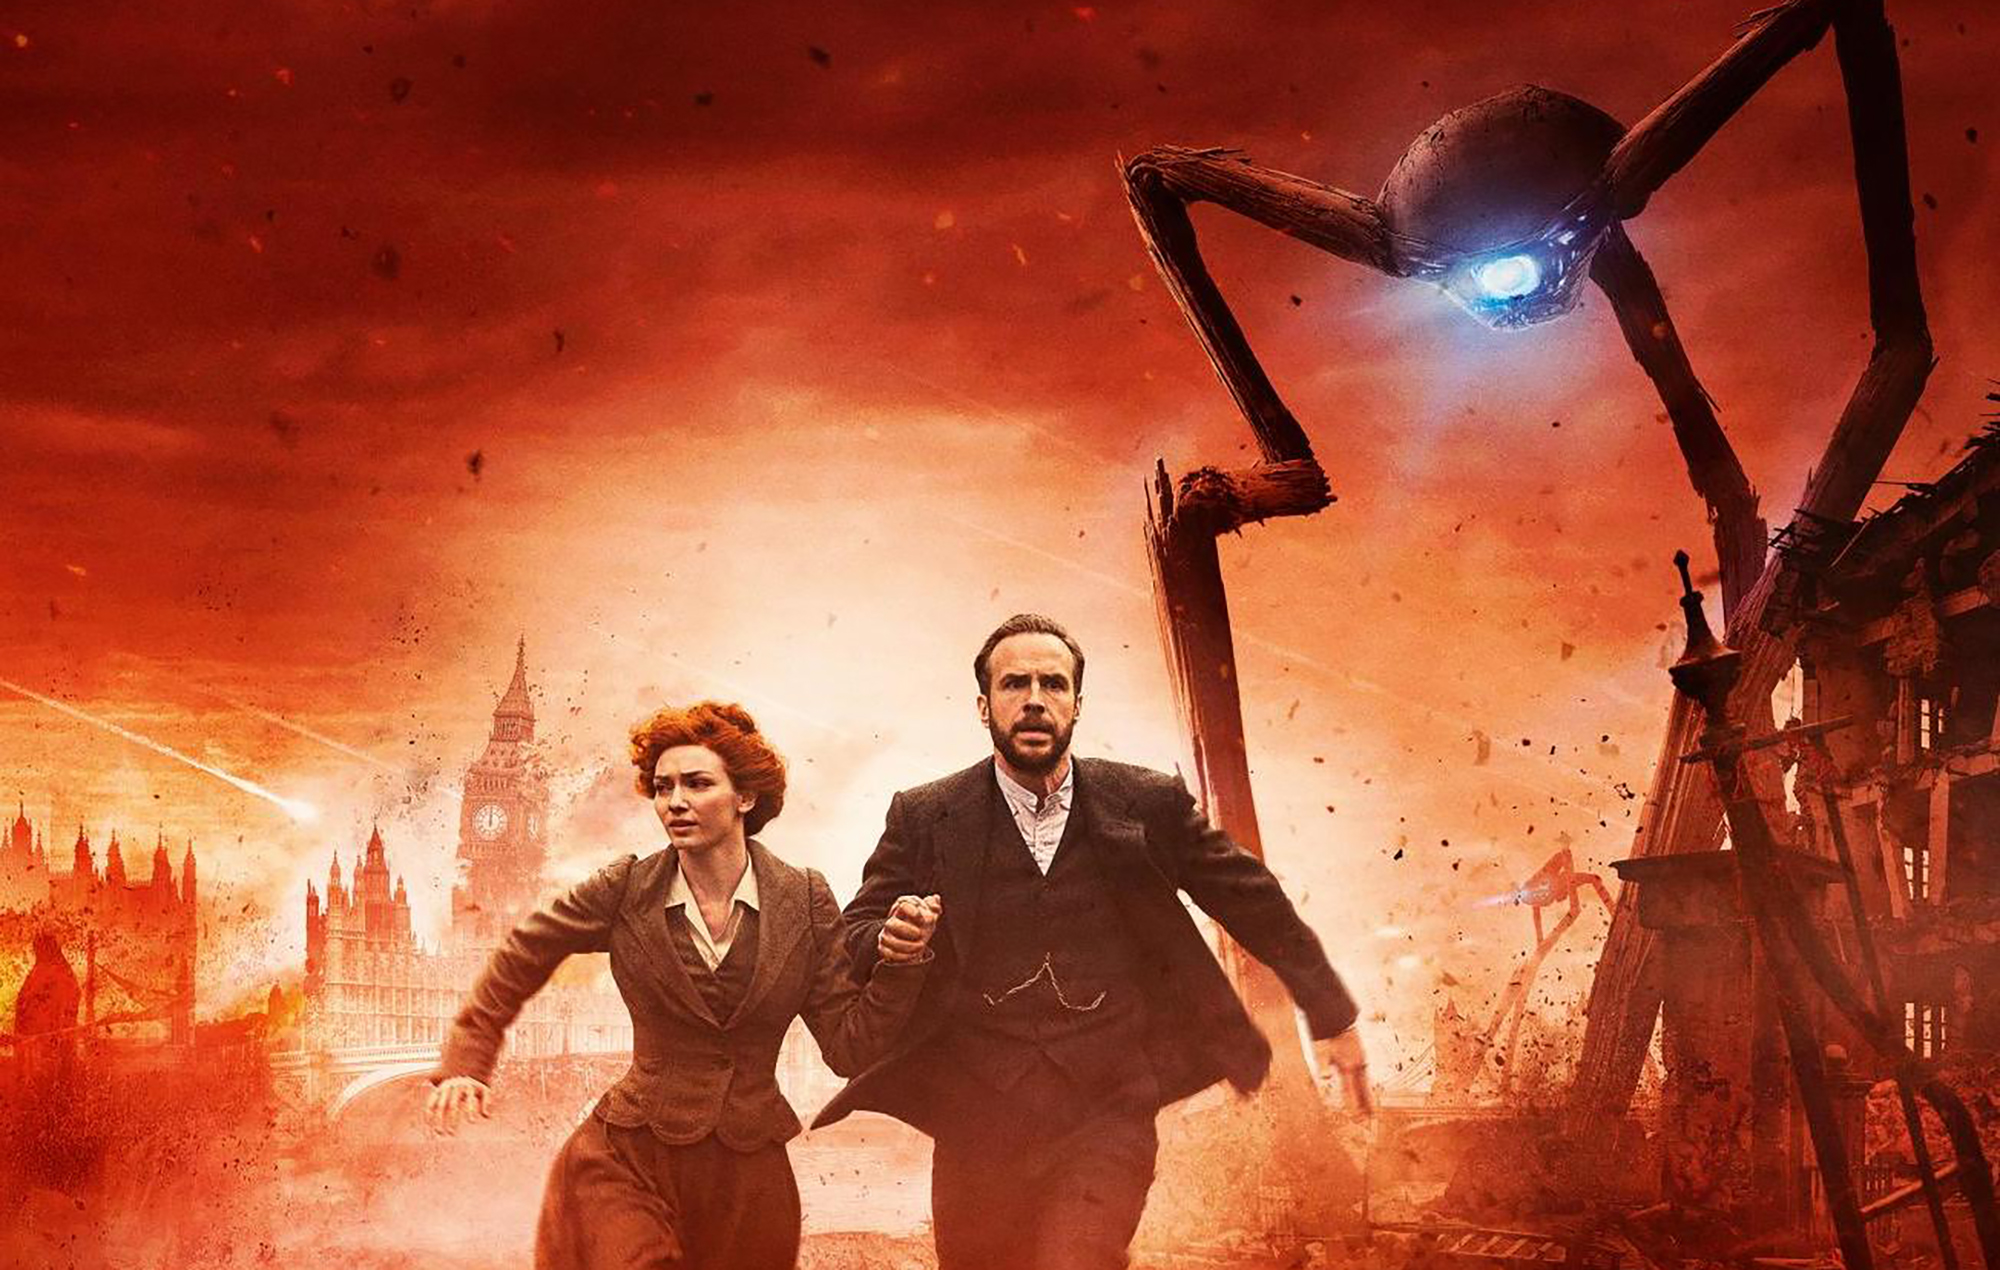 'The War of the Worlds' review: a slow, dim-witted take on a British sci-fi classic